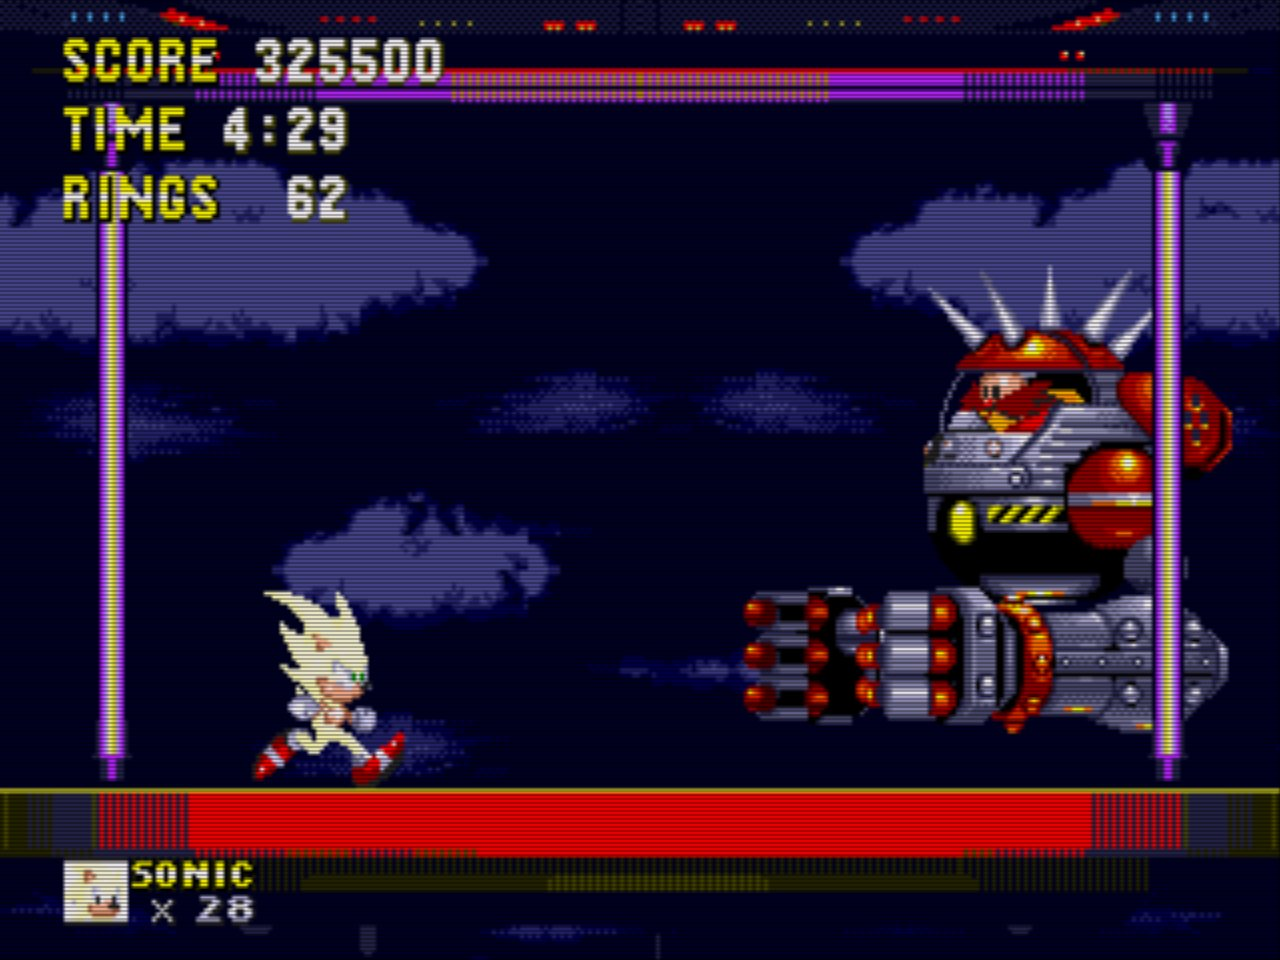 Rttp Sonic The Hedgehog 1 2 3 K On Sega Genesis Megadrive Page Imo Z8 Spin As An Aside I Fucking Hated Lengthy Cutscene Before Final Boss Fight A Child Go Faster My Super Powers Run Out